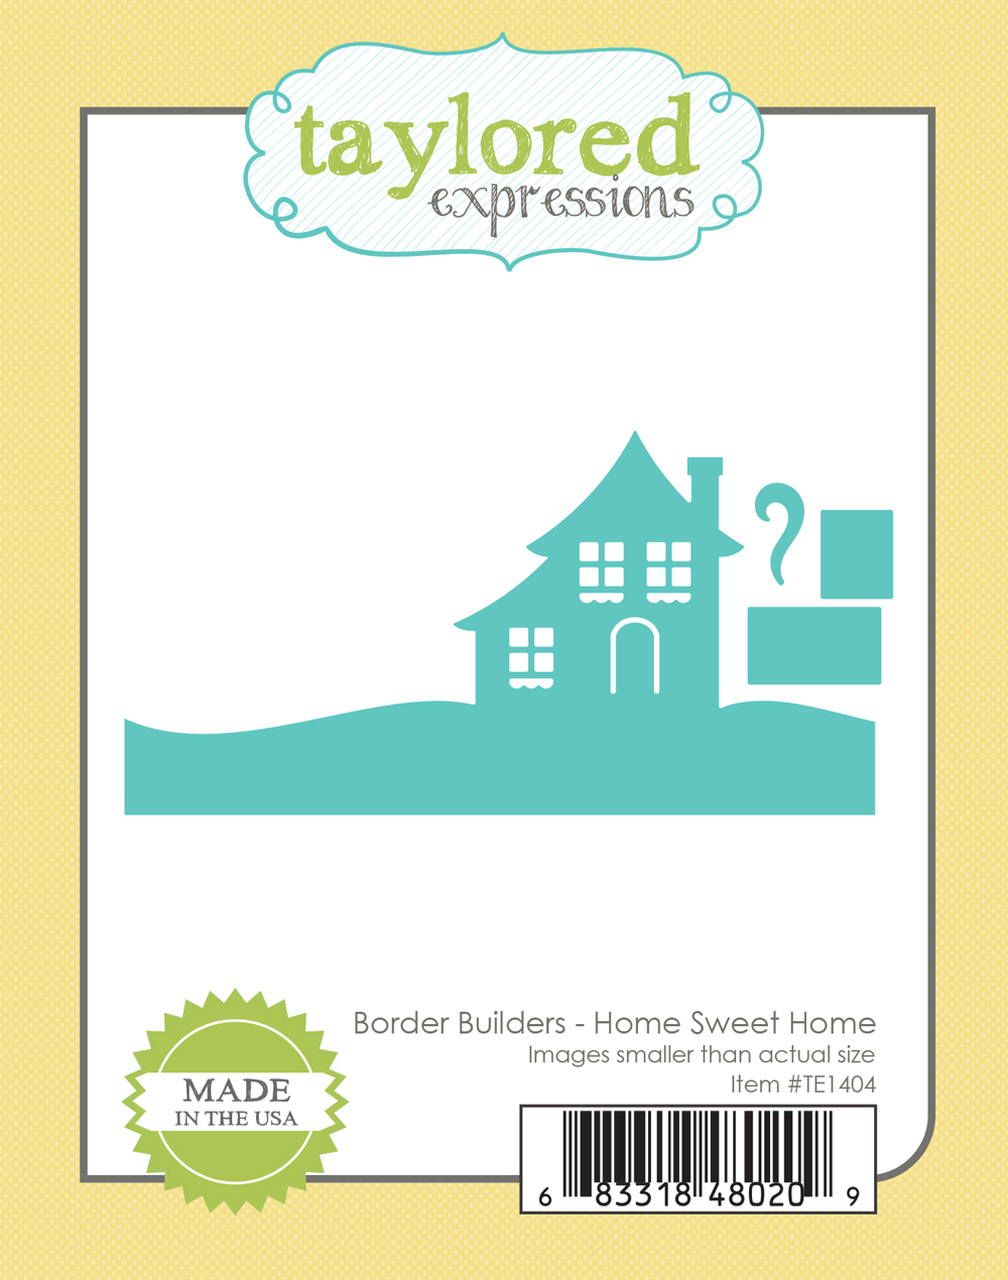 Taylored Expression - Border Builders - Home Sweet Home